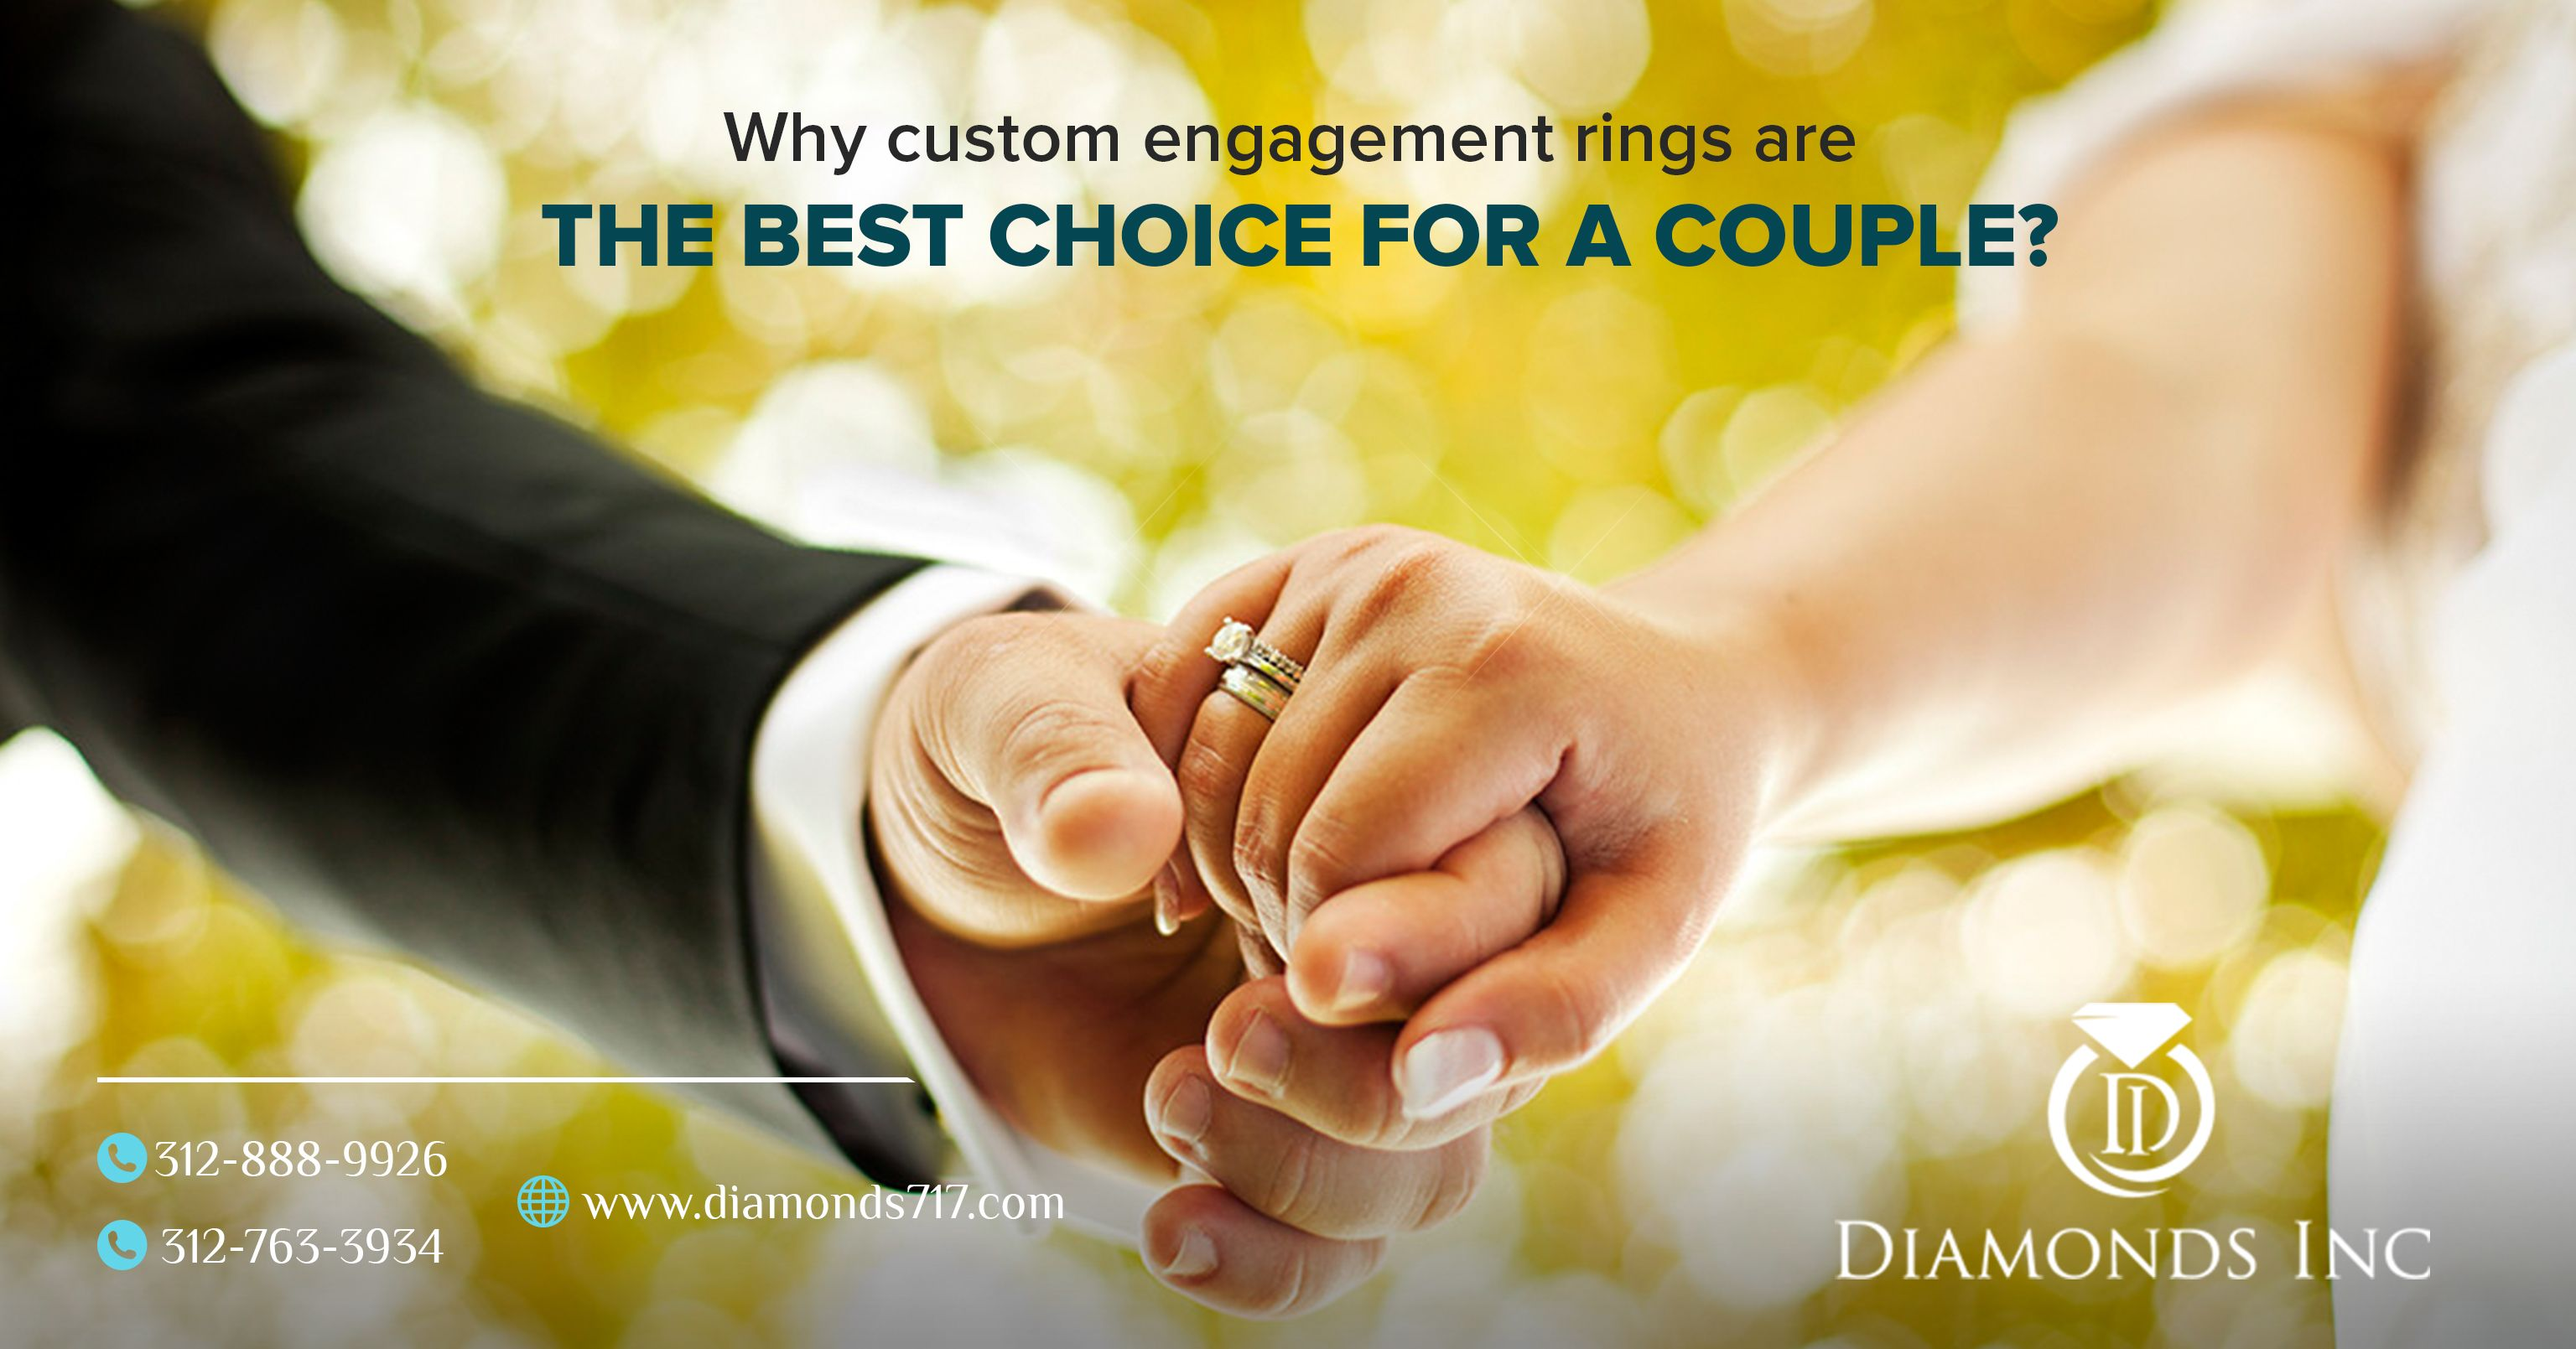 Why Custom Engagement Rings Are The Best Choice For a Couple?